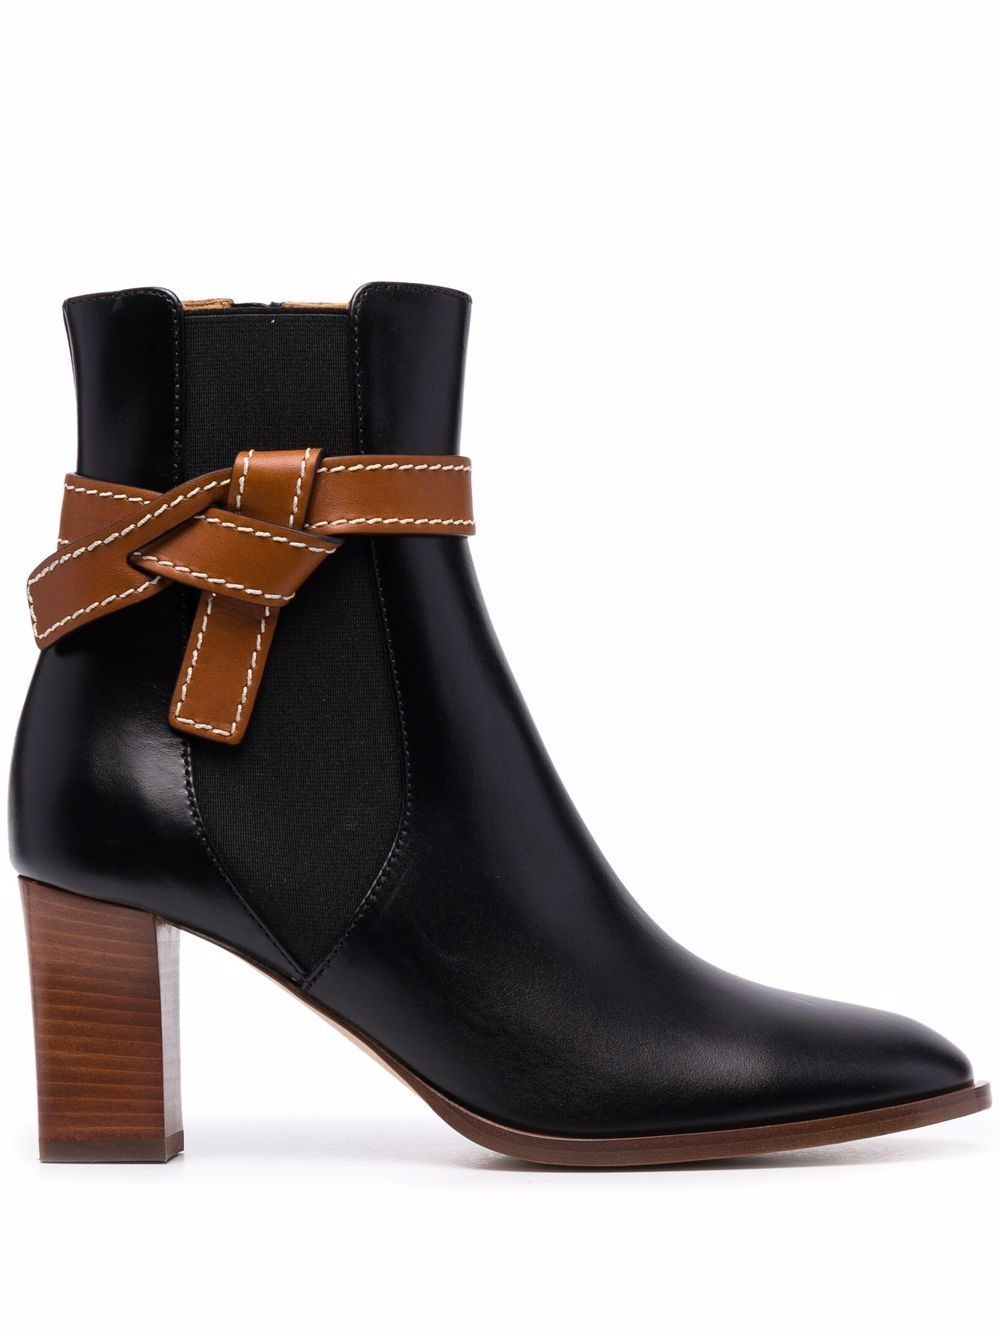 Gate leather boots